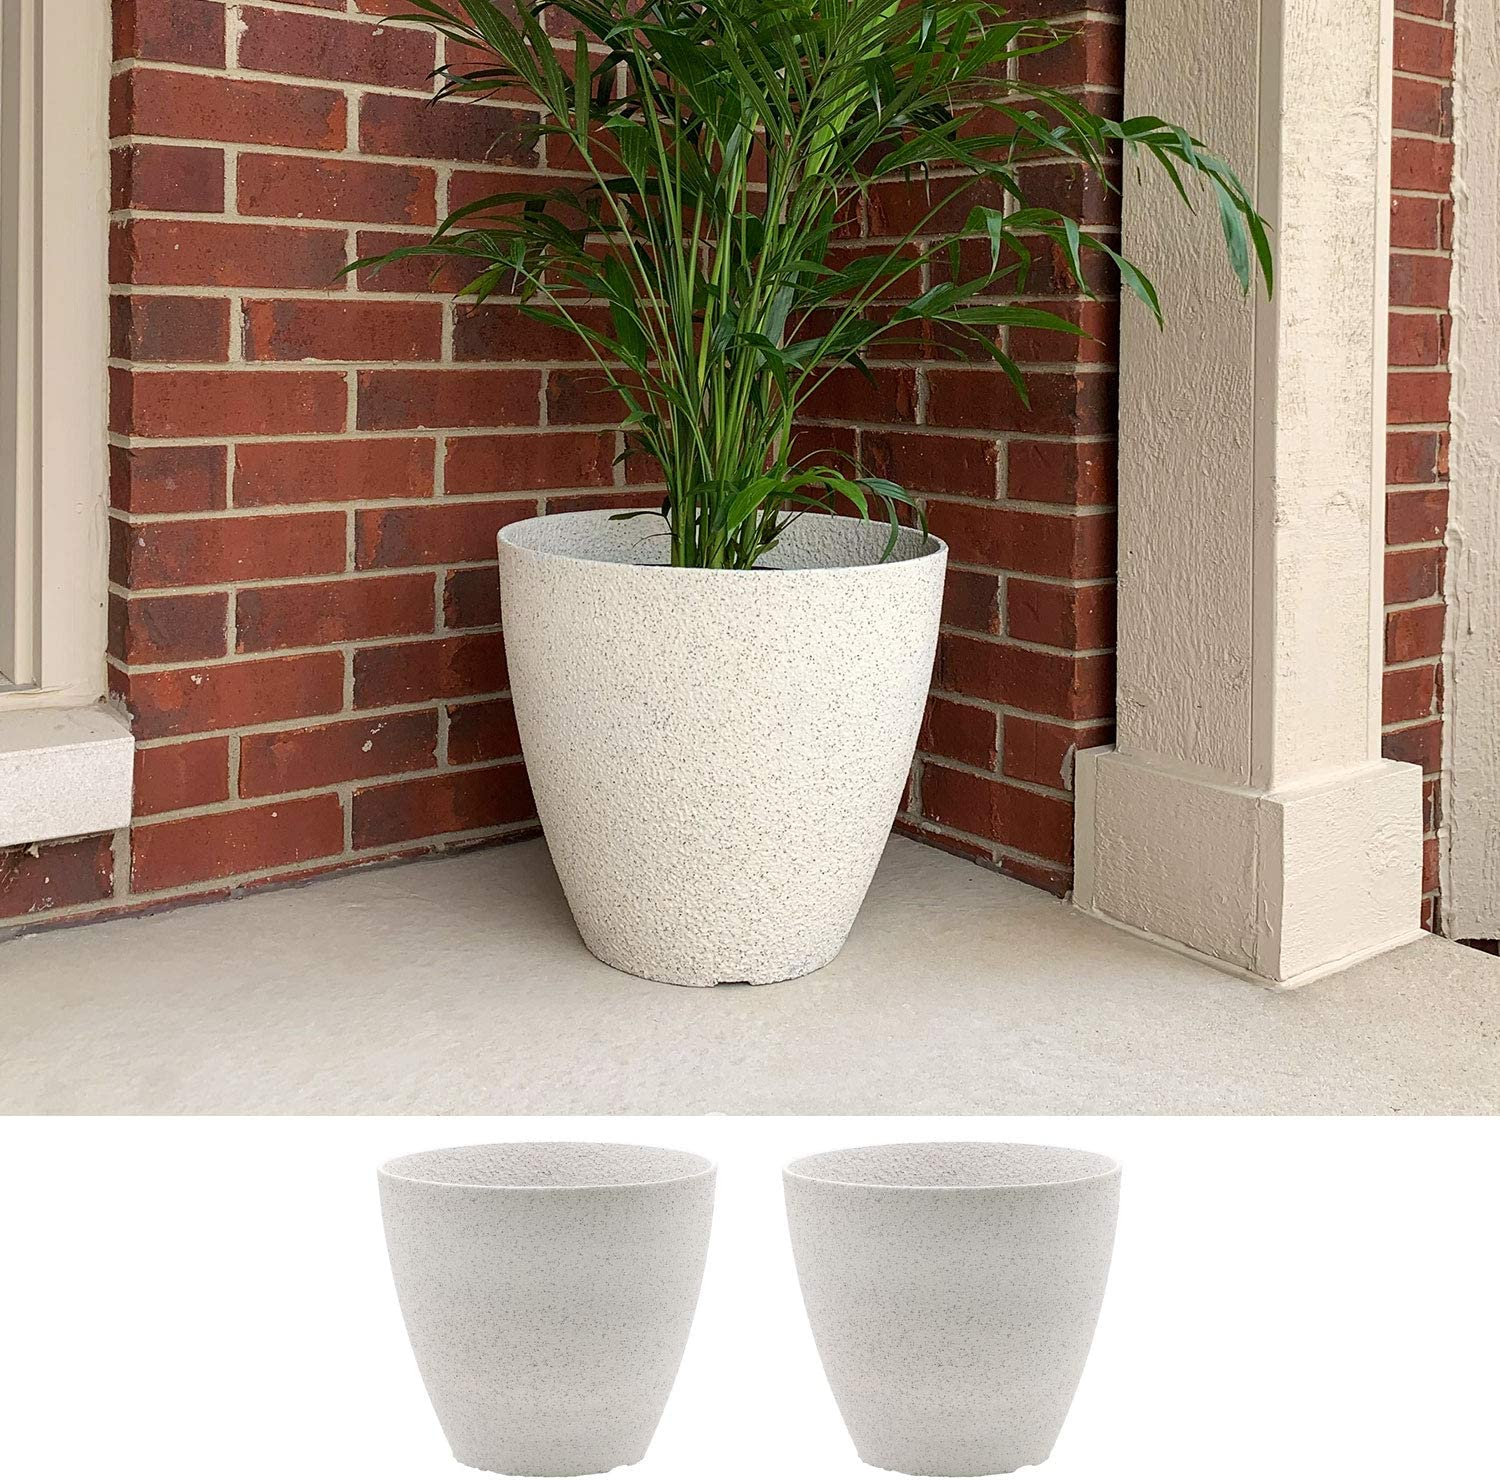 2-Pack 15-in. Round Faux Stone Planter Garden Resin Potted Boston Mall Long-awaited Flowe